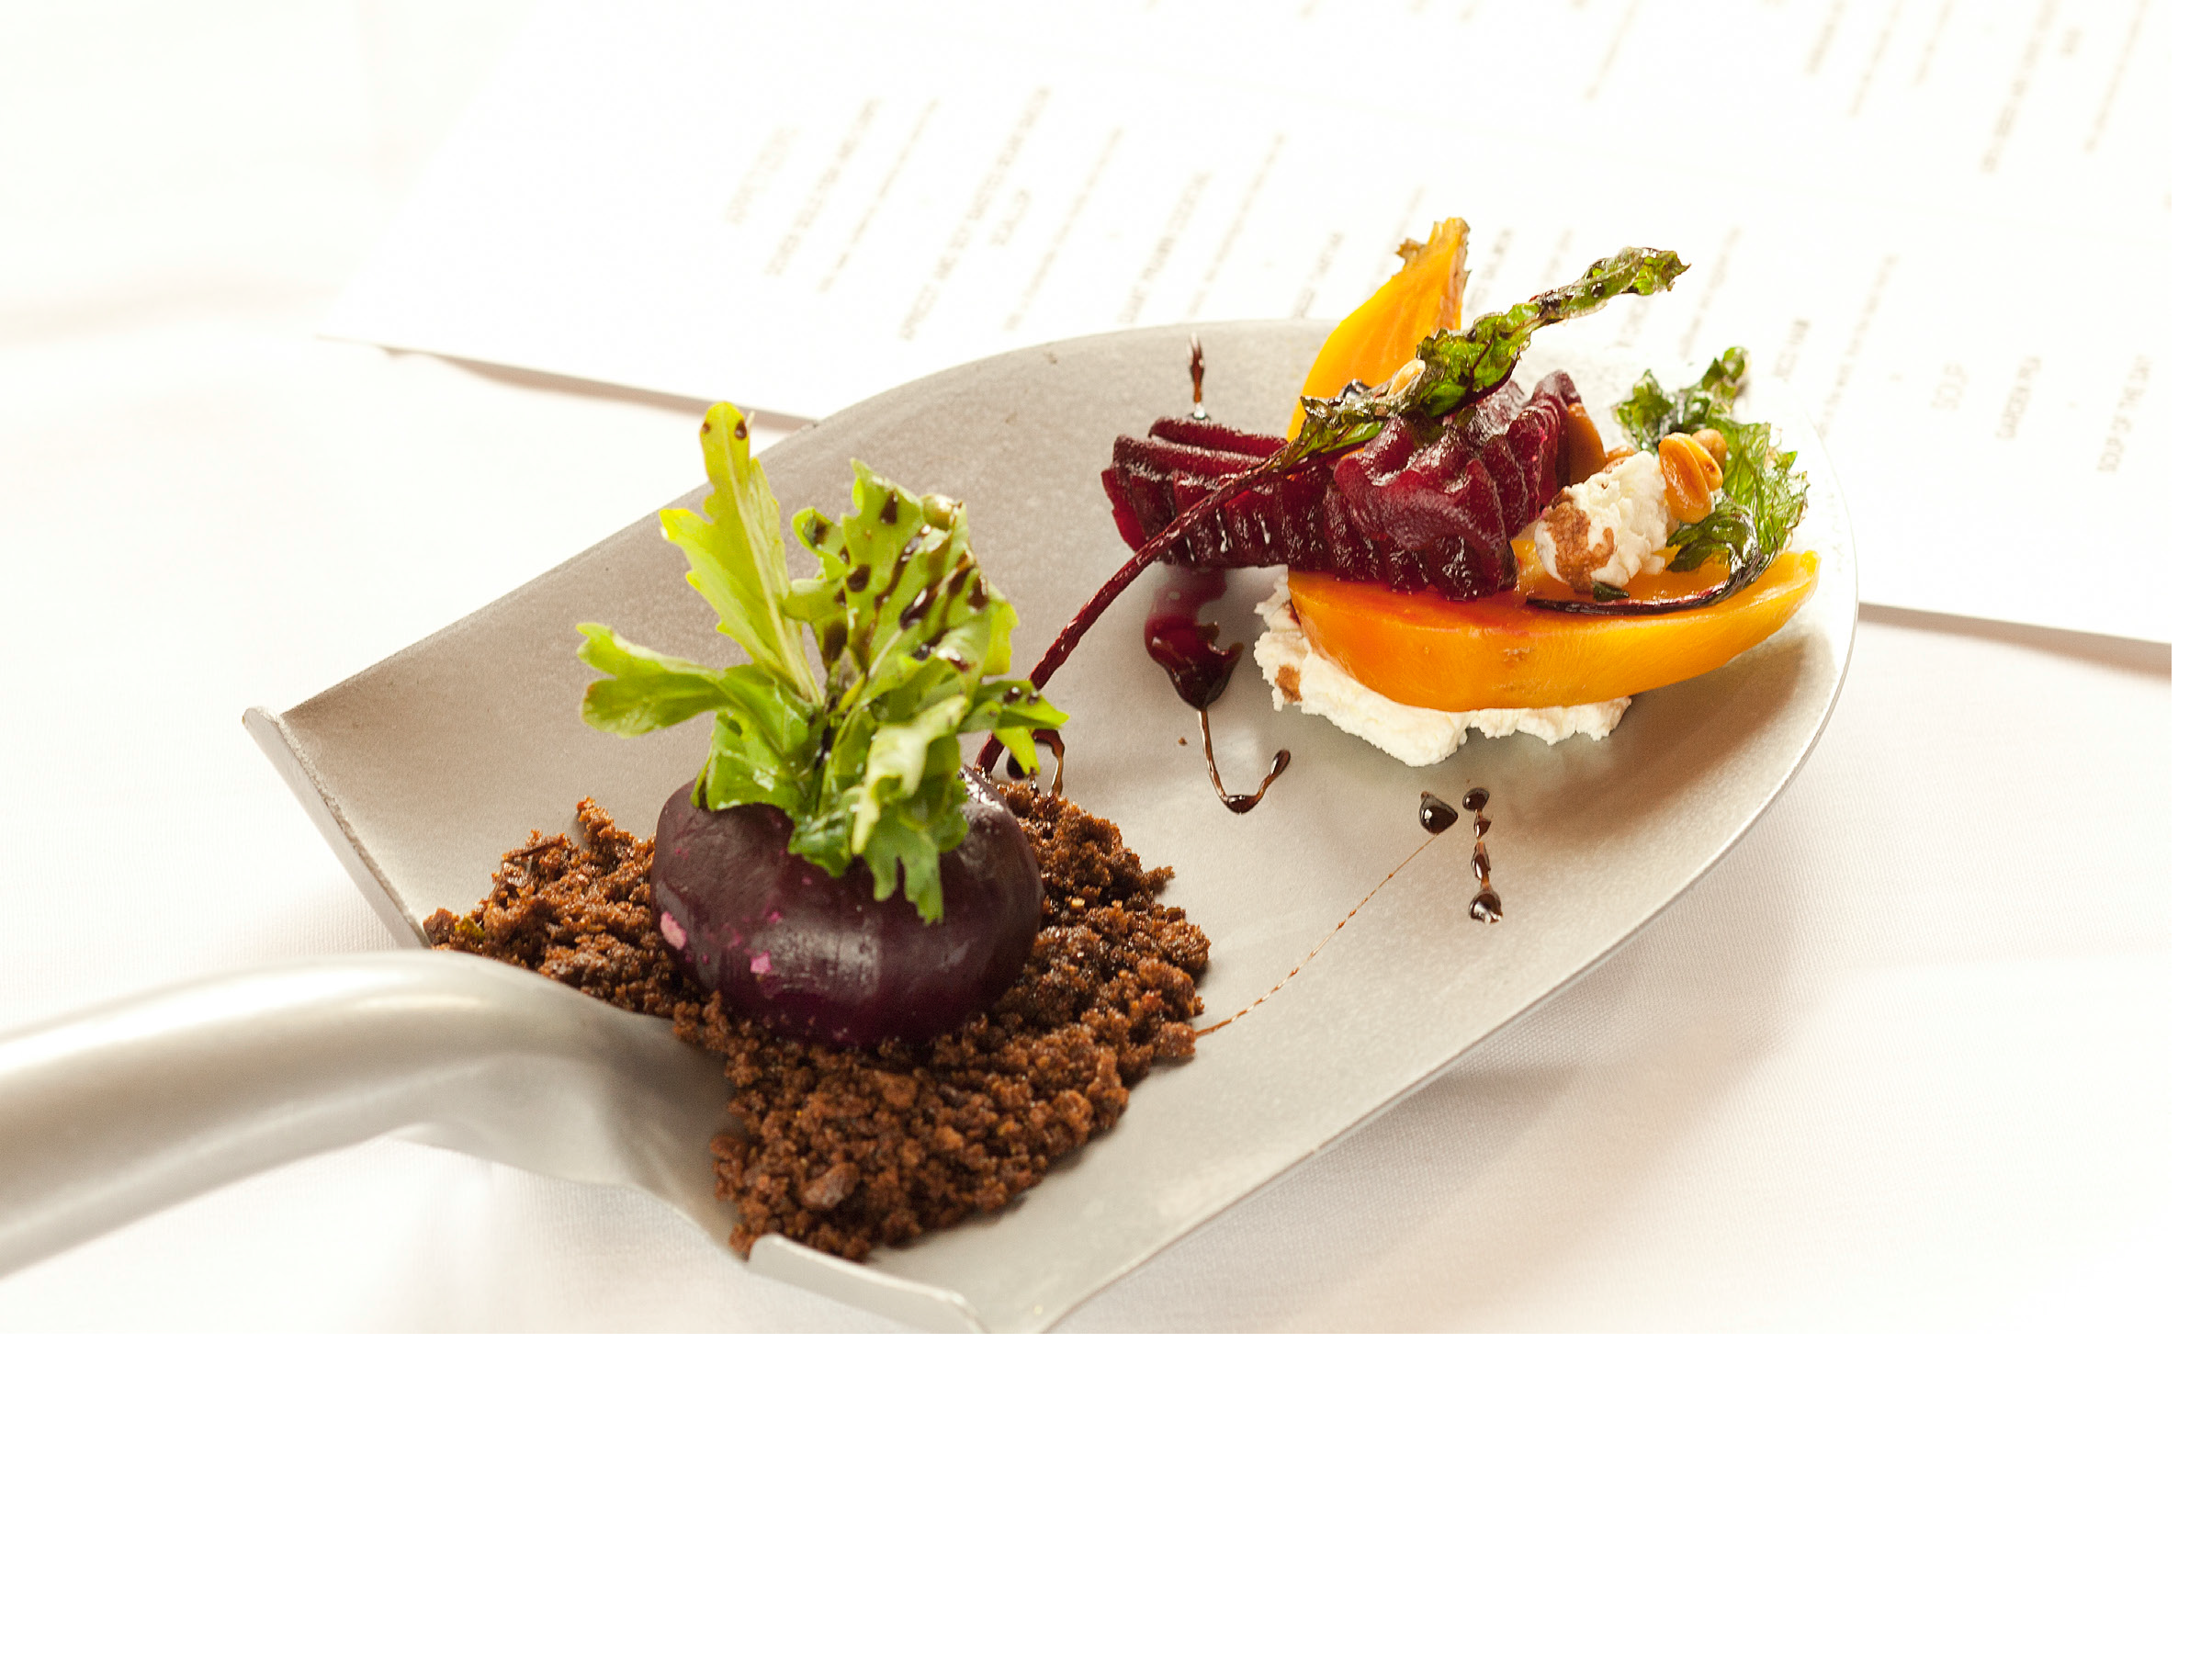 Beet Salad! Mmmmm...  http://www.characters.ca/ https://www.facebook.com/pages/Characters-Restaurant/149414468402902 https://twitter.com/CharactersFood https://www.youtube.com/user/CharactersFood